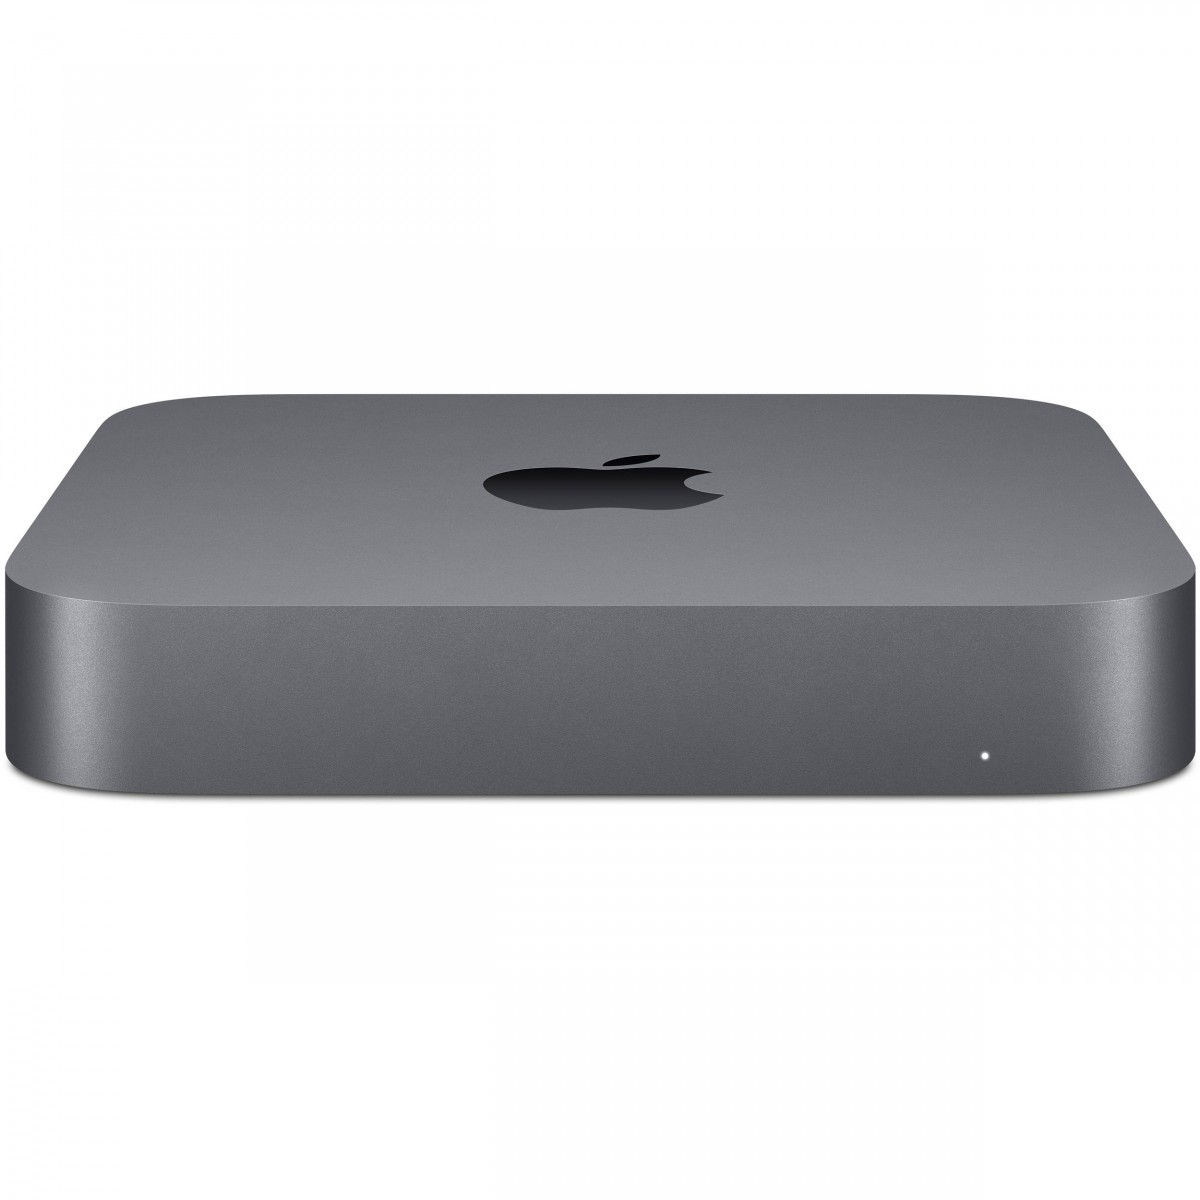 Apple Mac mini MRTR2CZ/A, i3 3.6GHz, 8GB, 128GB SSD, Intel UHD, OS X